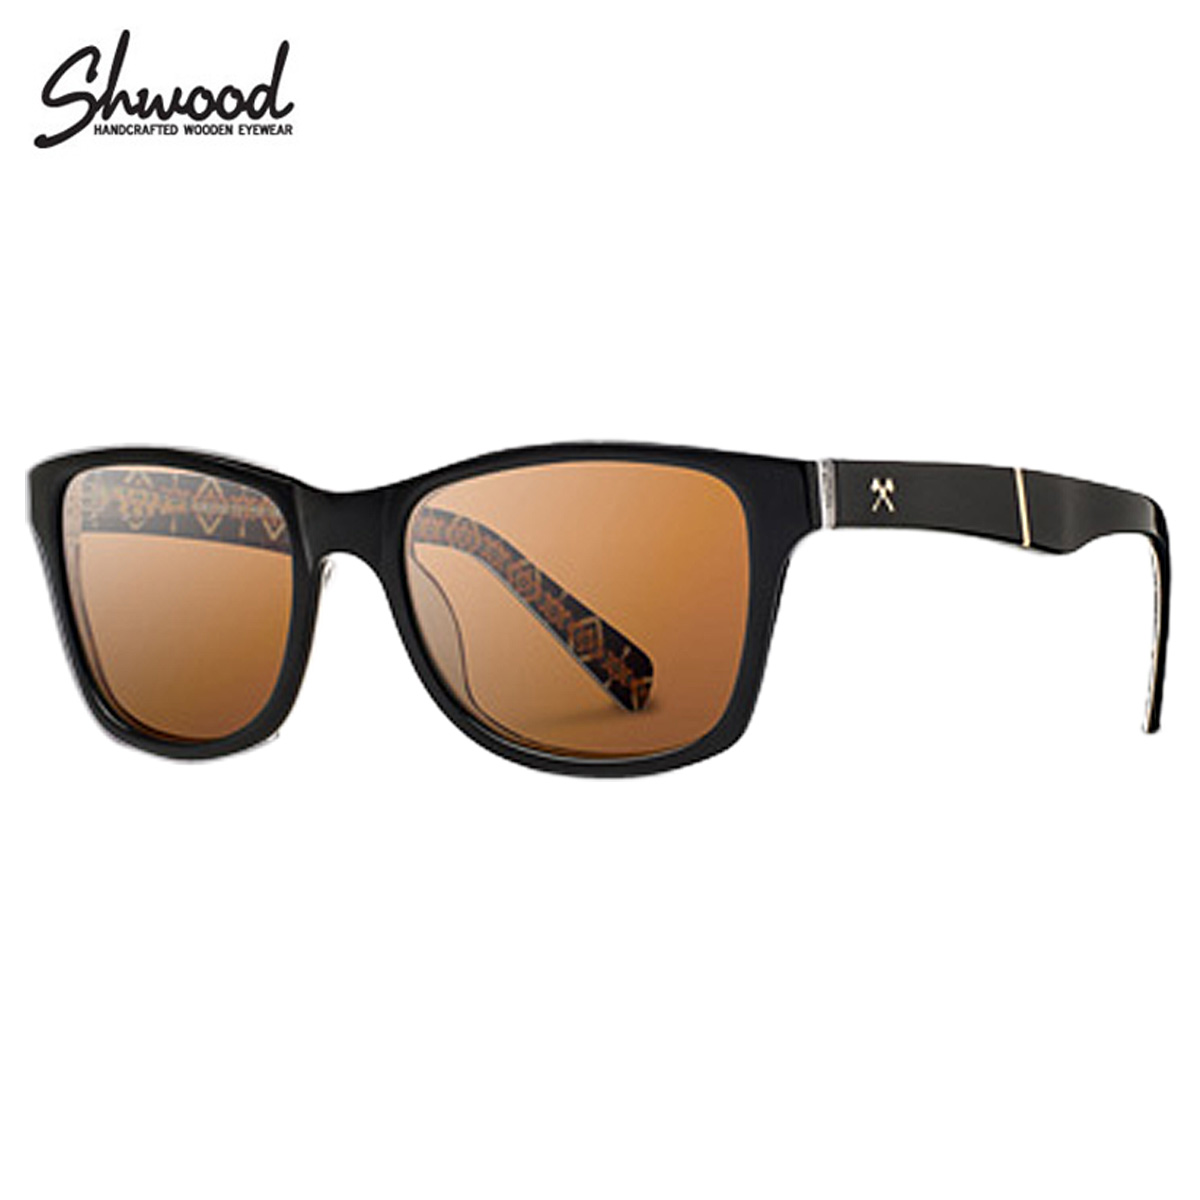 016687e7a40 ALLSPORTS  Sud Shwood Pendleton PENDLETON mens Womens sunglasses handmade  Rancho Brown CANDY  7 28 new in stock